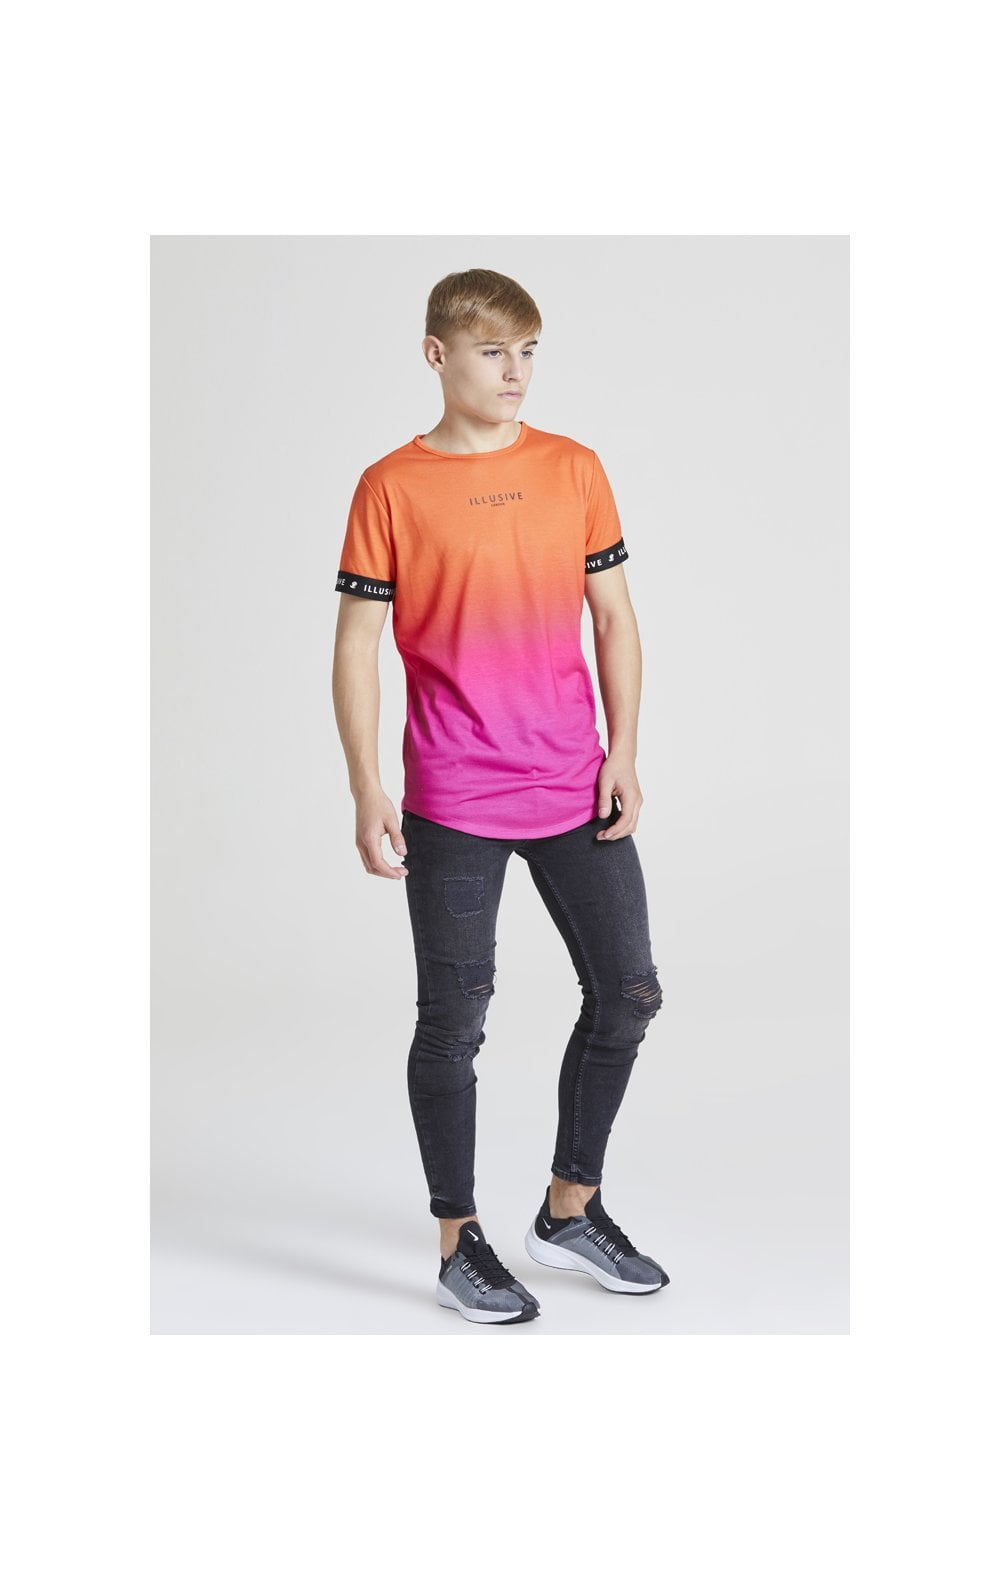 Illusive London Fade Tech Tee - Orange & Pink (2)